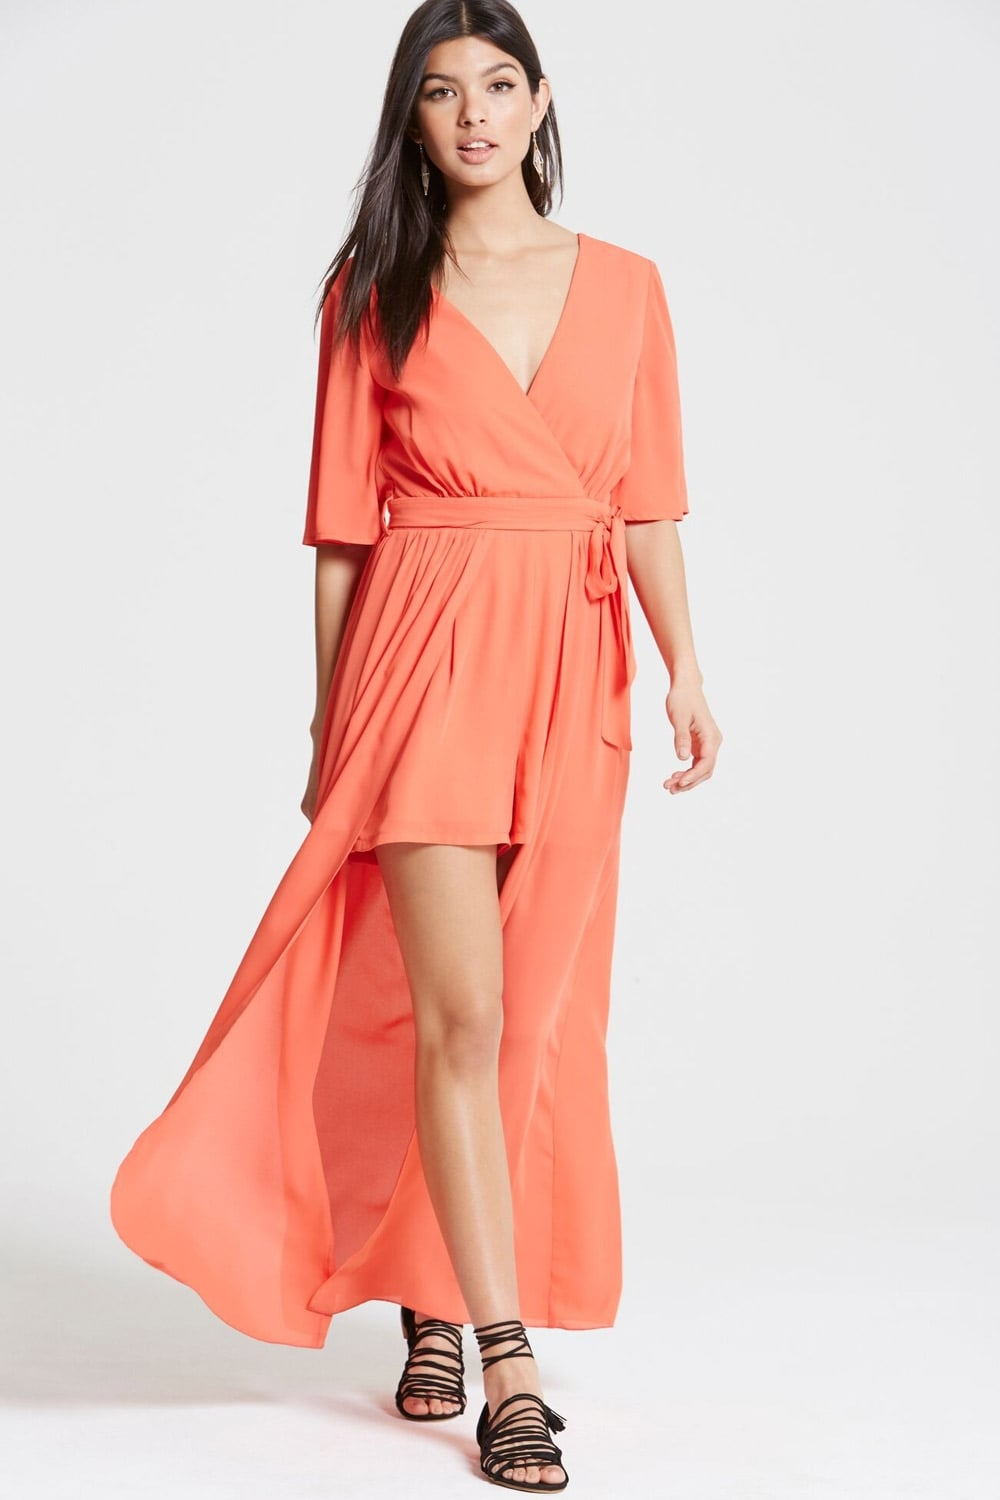 Outlet Girls On Film Coral Maxi Overlay Playsuit - Outlet Girls On Film  from Little Mistress UK